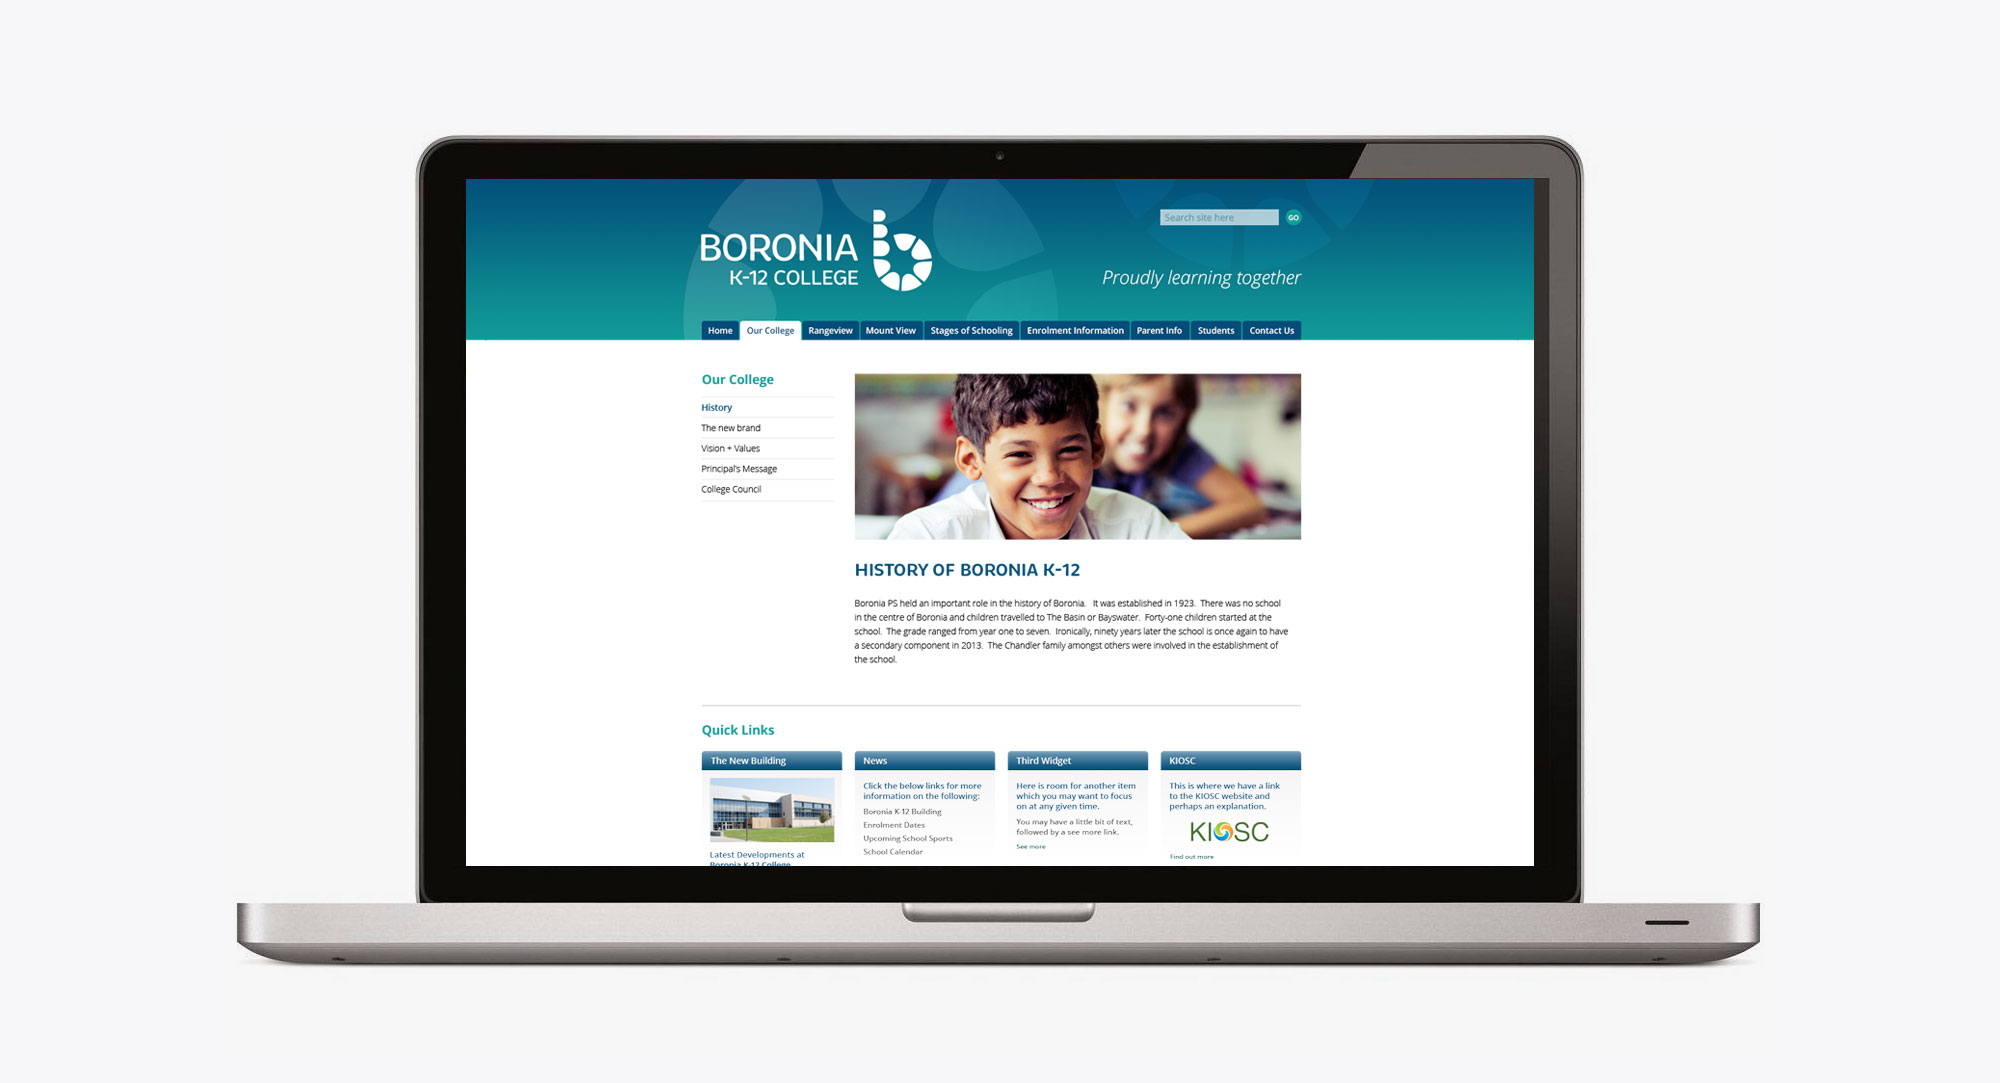 History page on the Boronia K12 College website